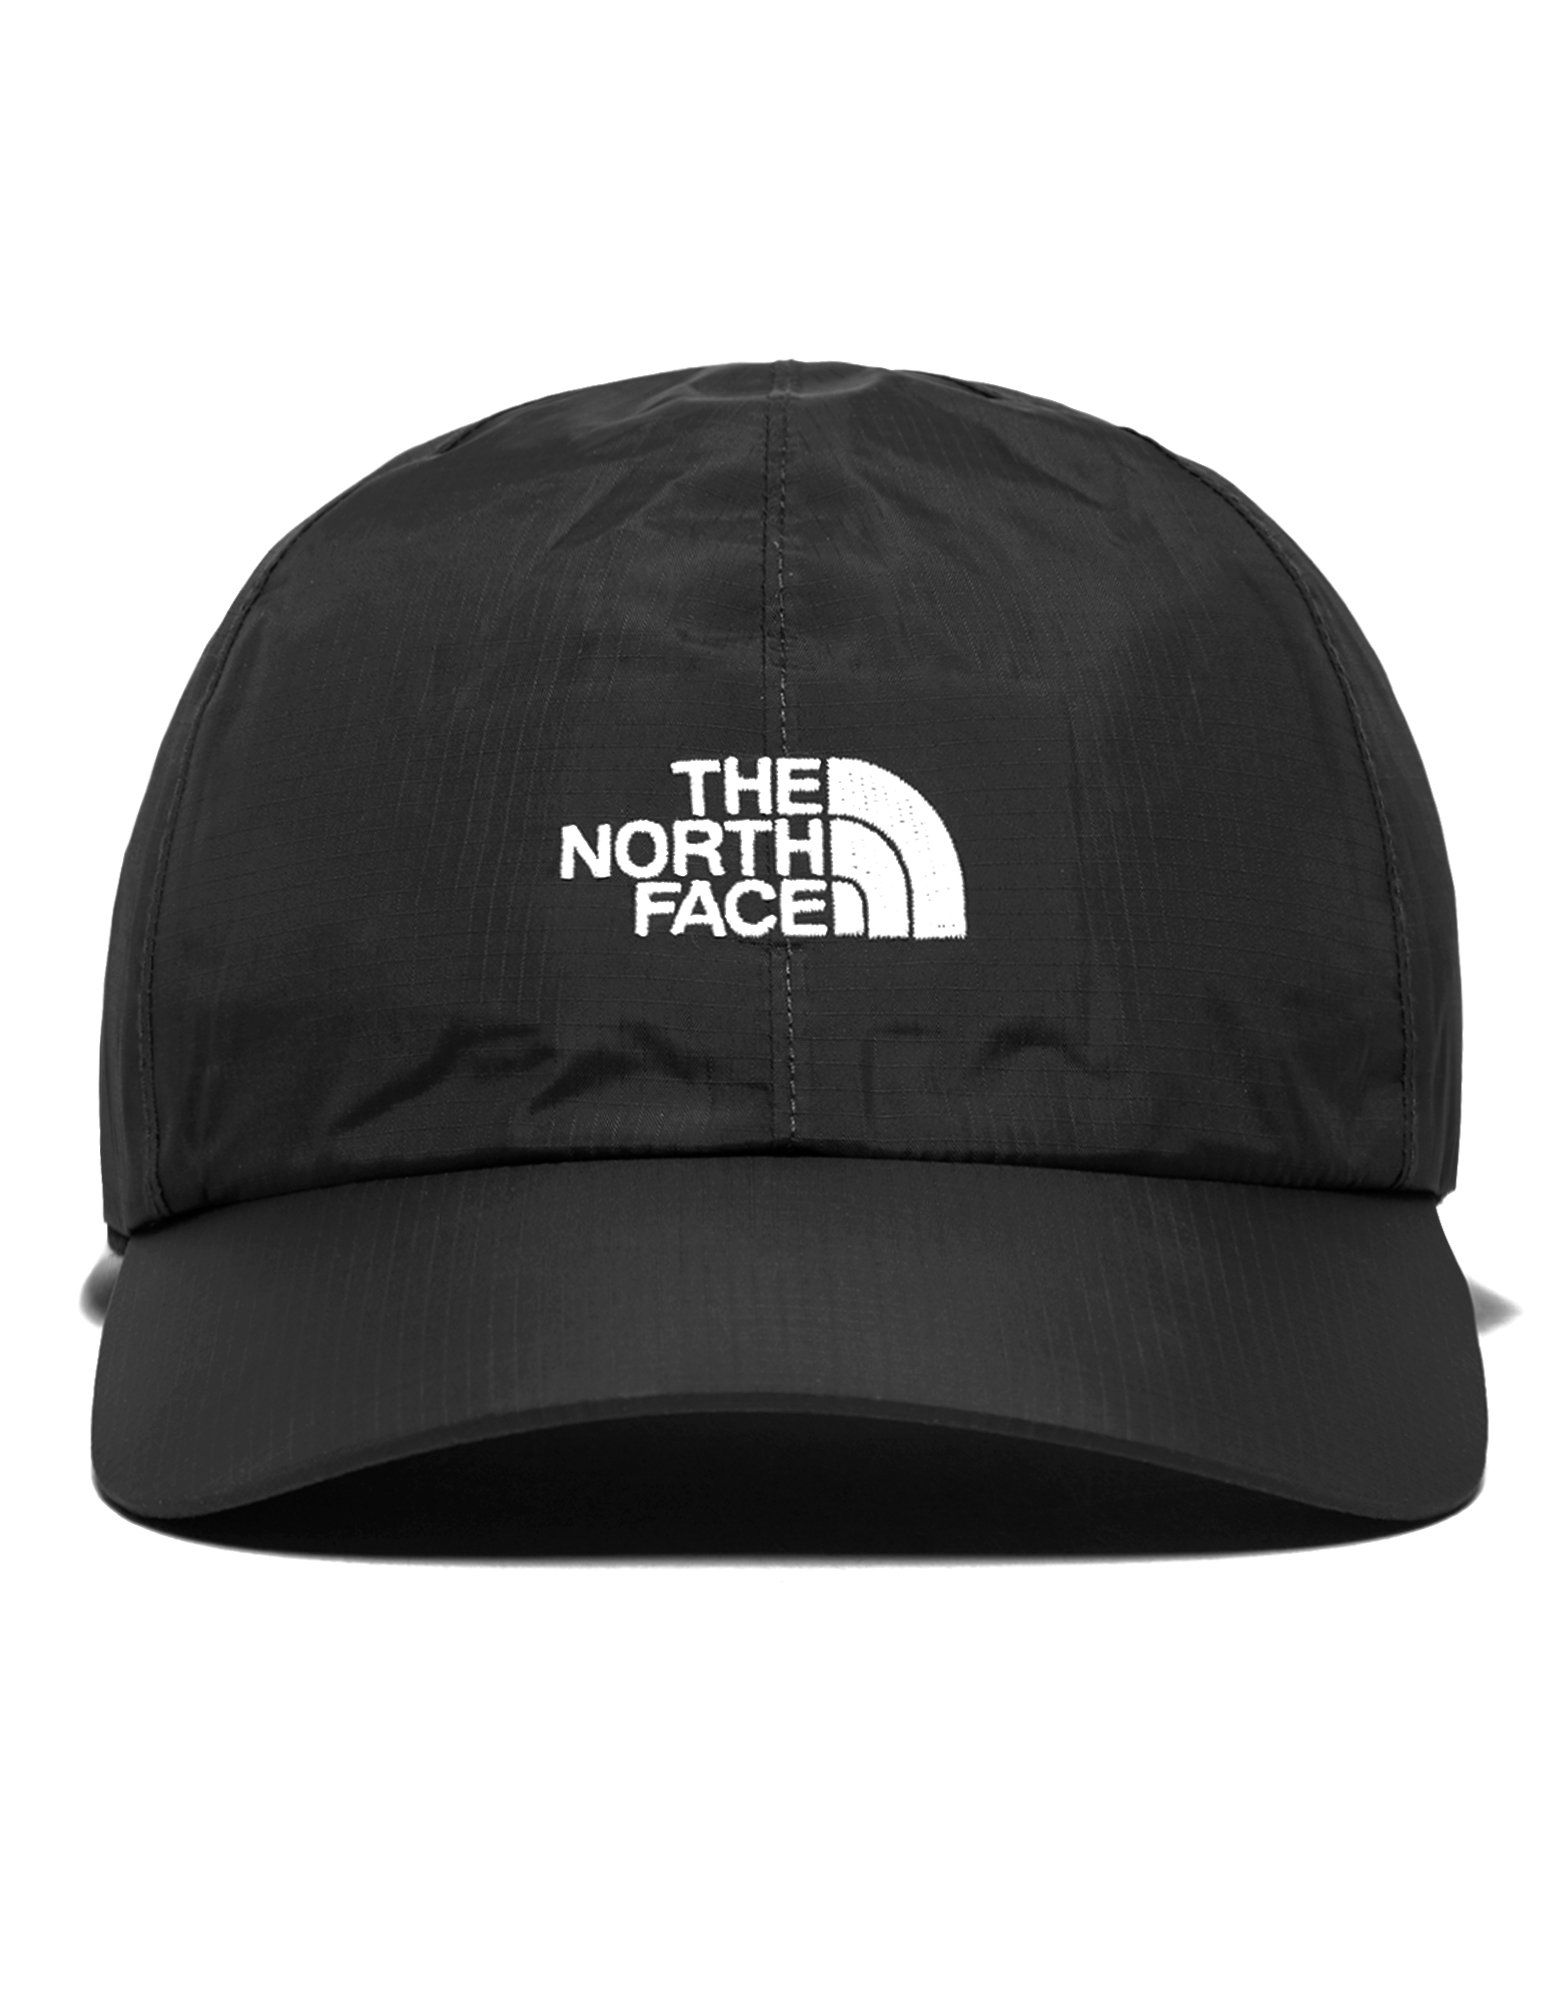 The North Face Dryvent Logo Cap | JD Sports